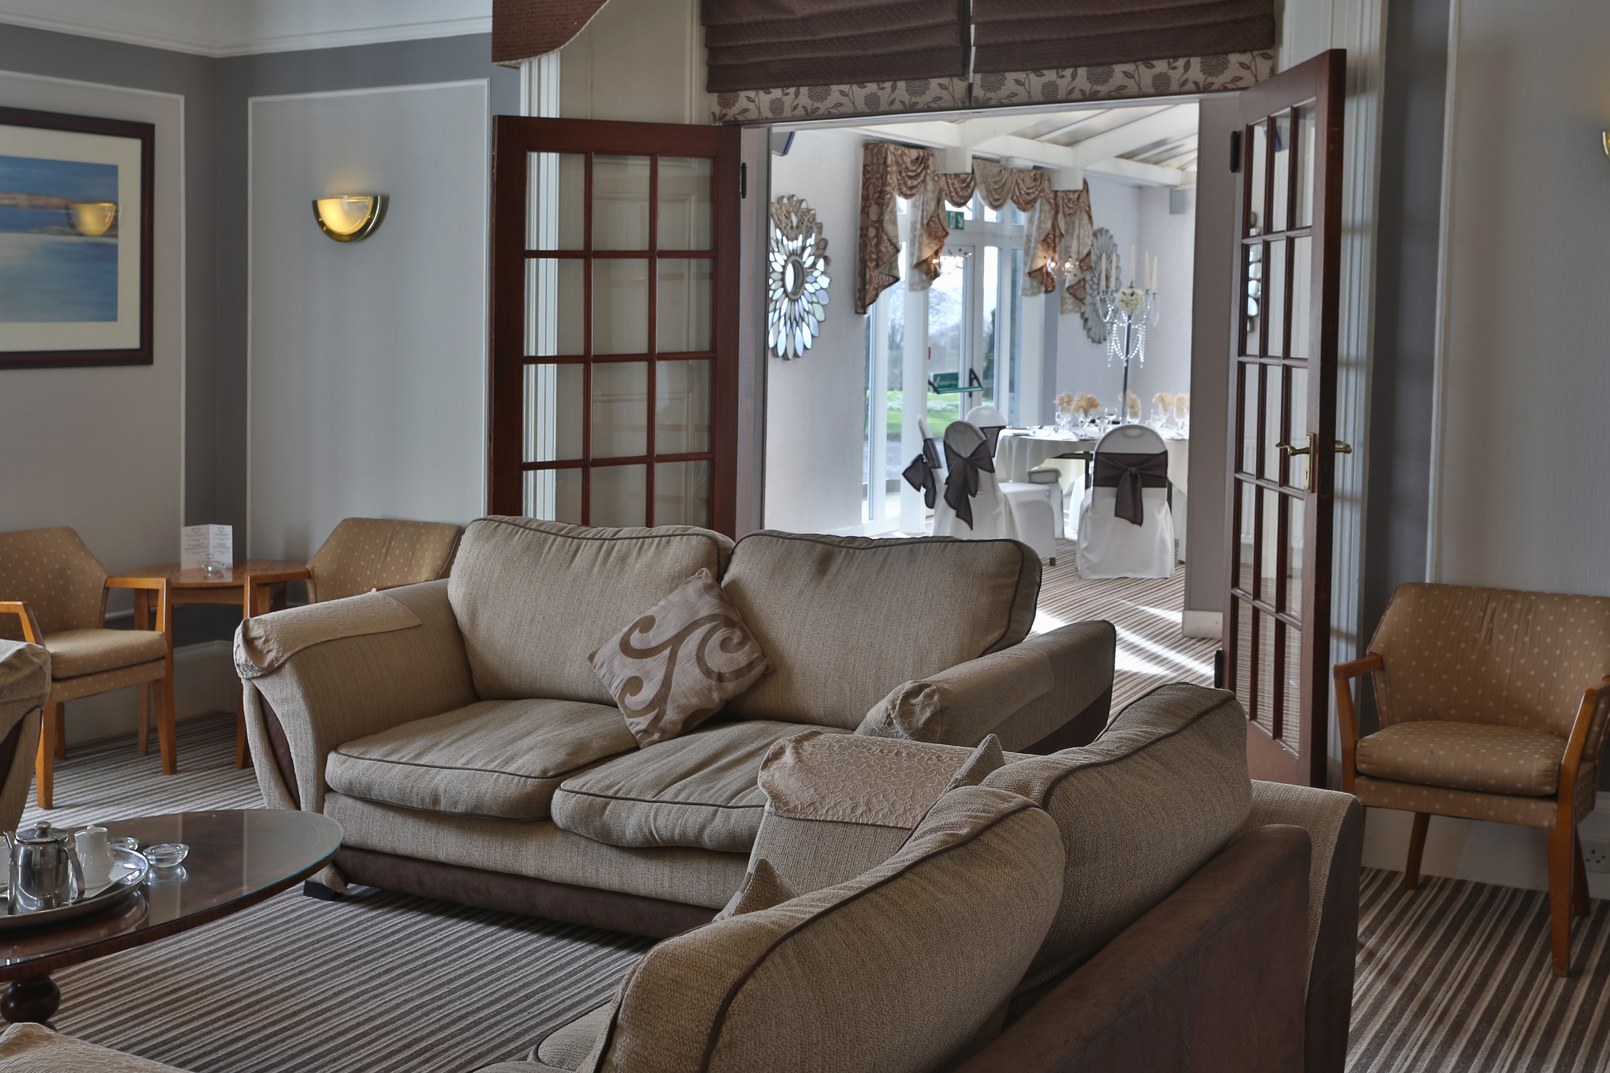 Best Western Dryfesdale Country House Hotel - Country house hotel interiors